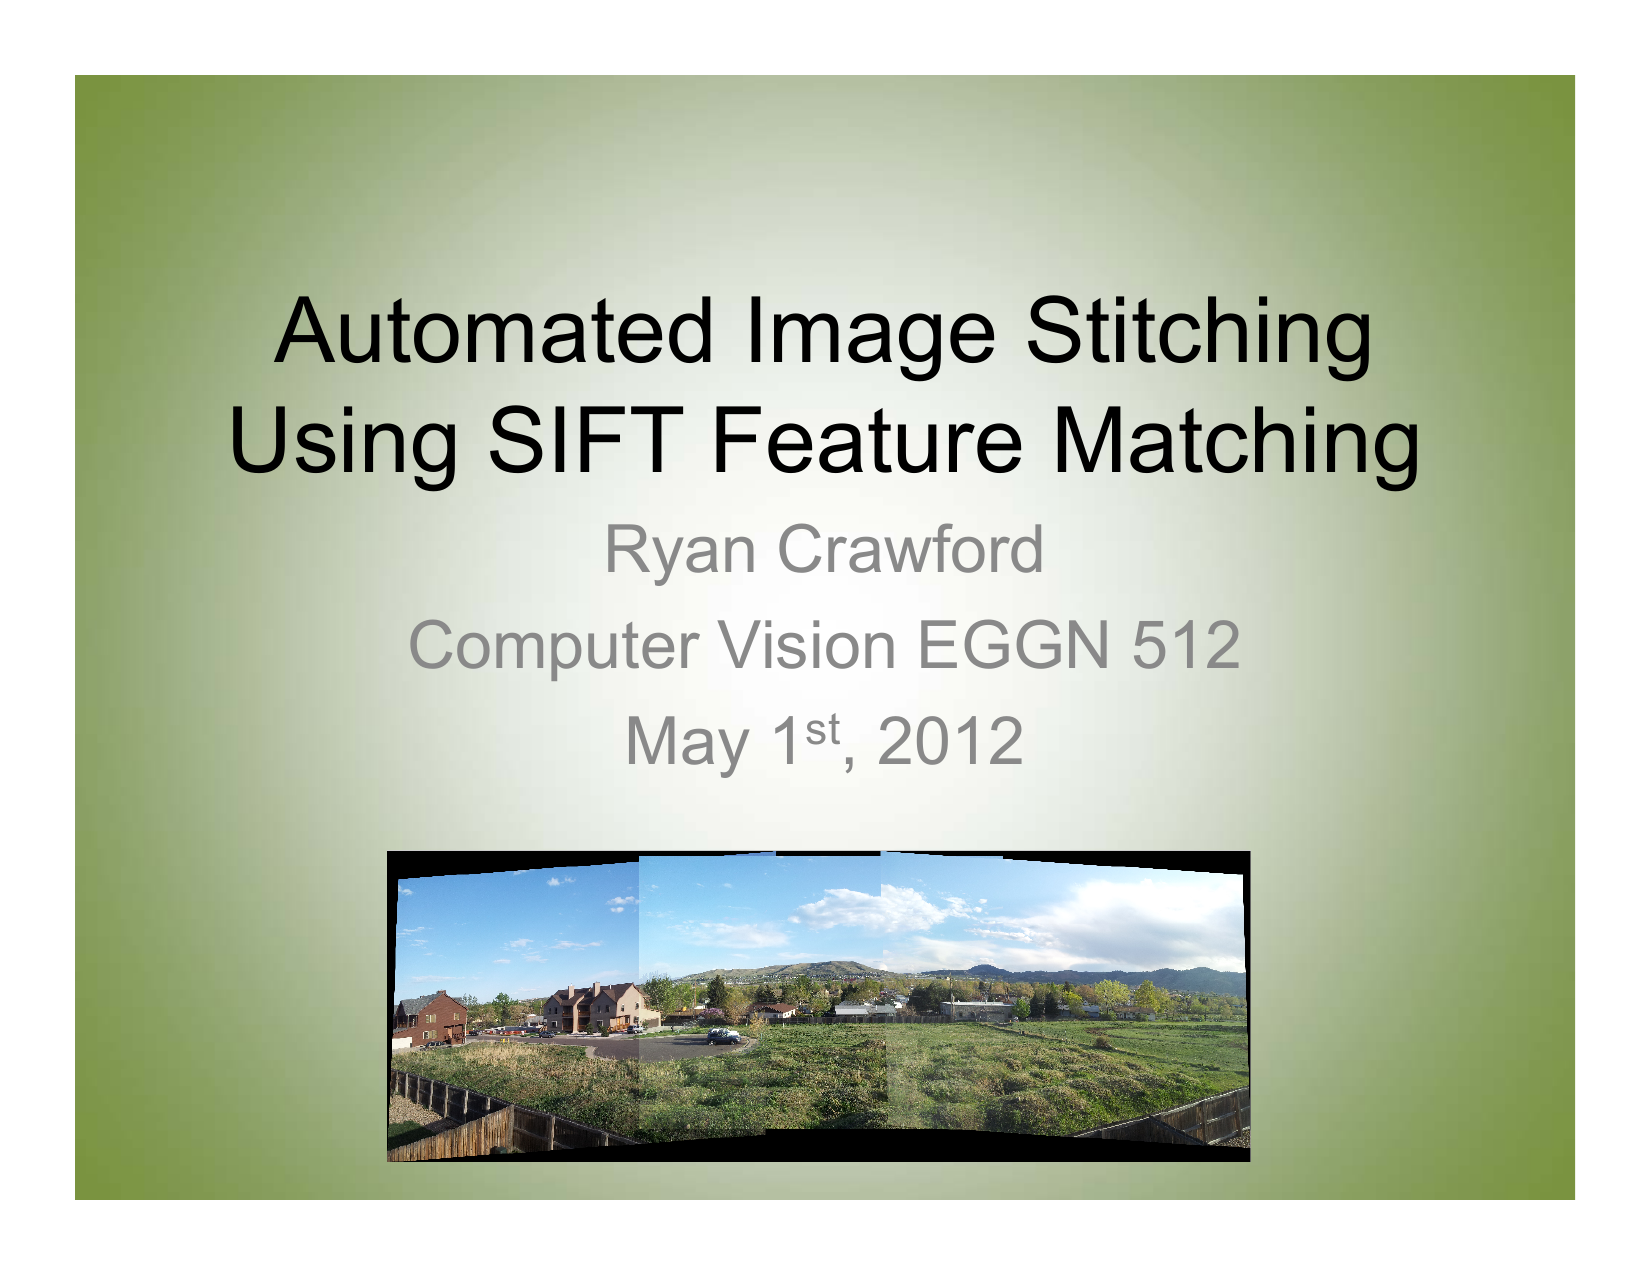 sift in computer vision